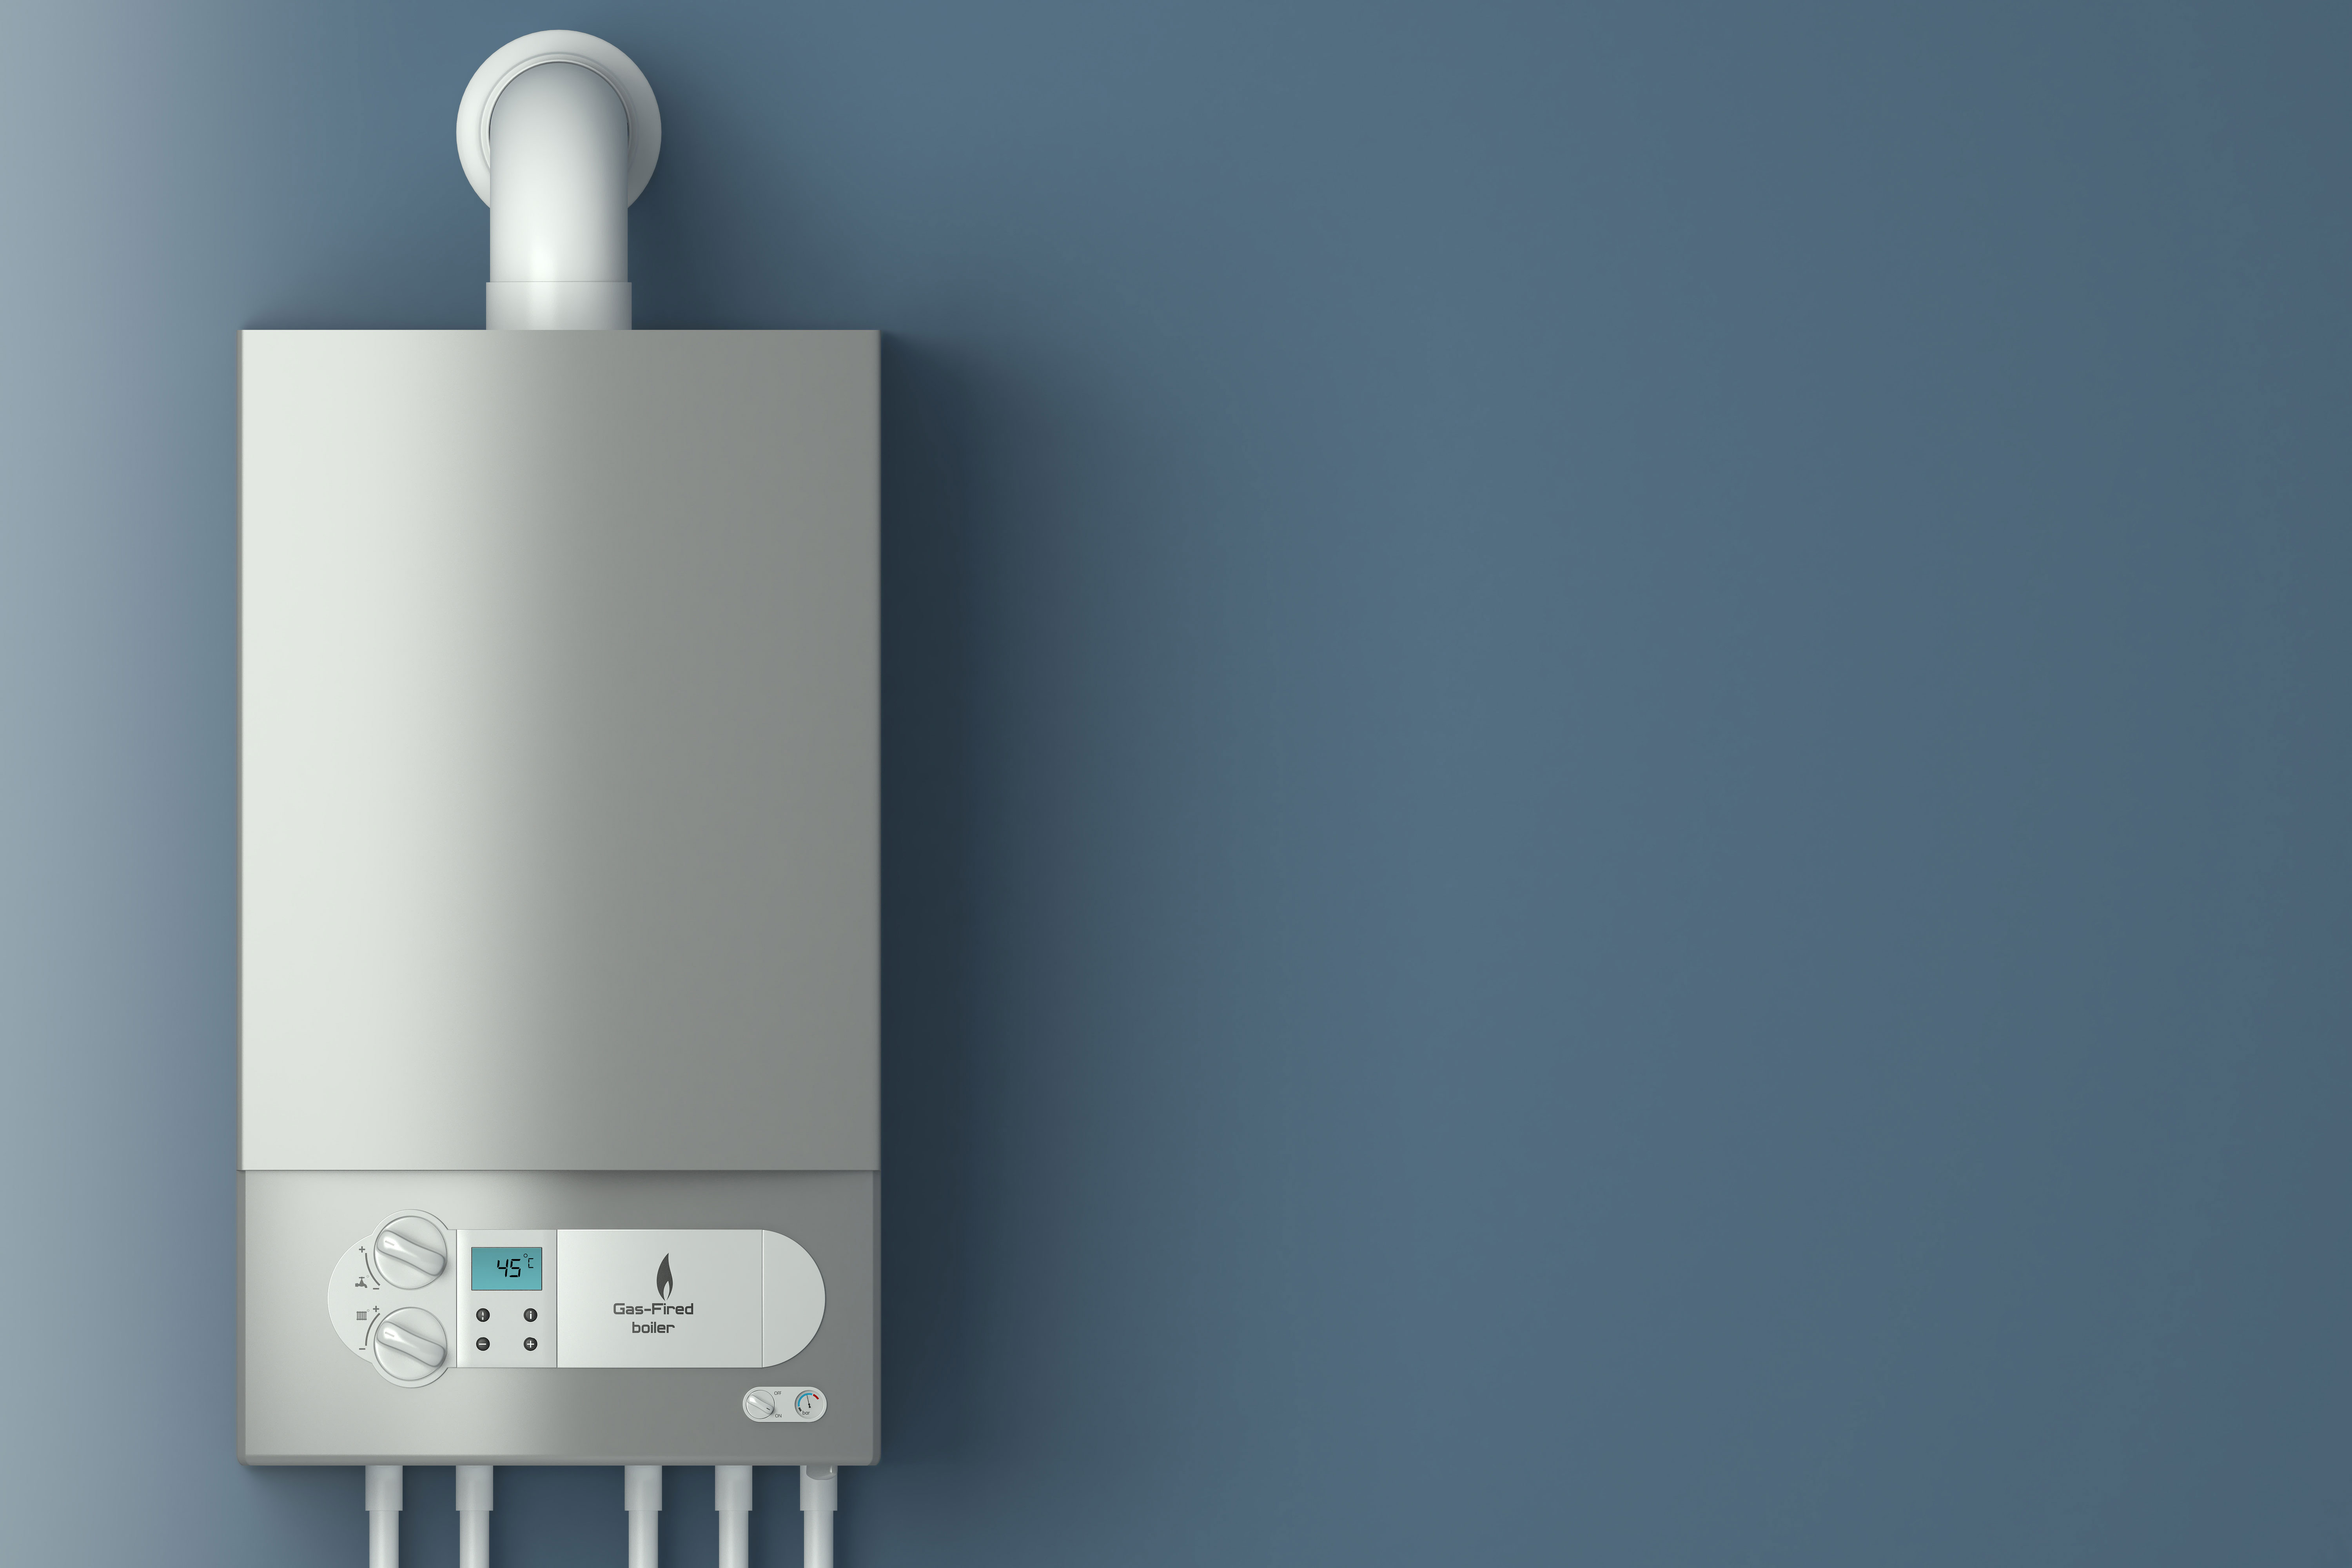 Pros and cons of gas tankless water heaters - Tankless Water Heaters Pros And Cons